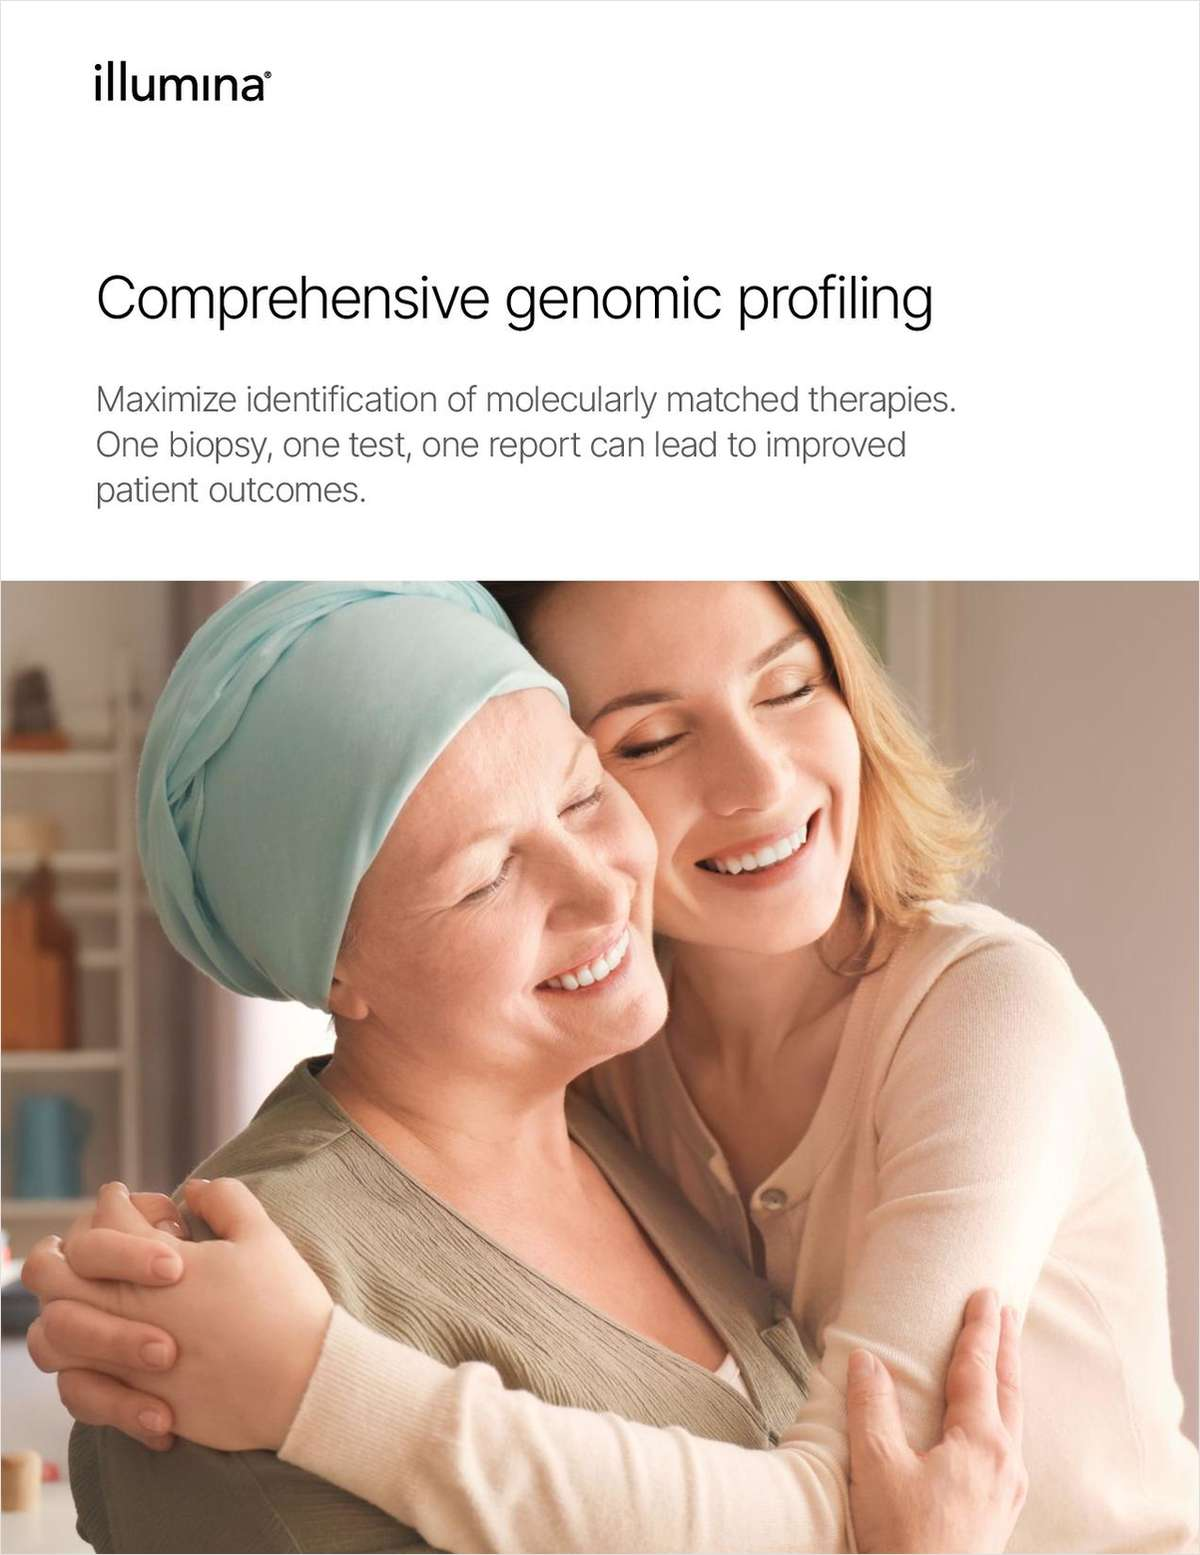 Comprehensive Genomic Profiling: Maximize Identification of Molecularly Matched Therapies